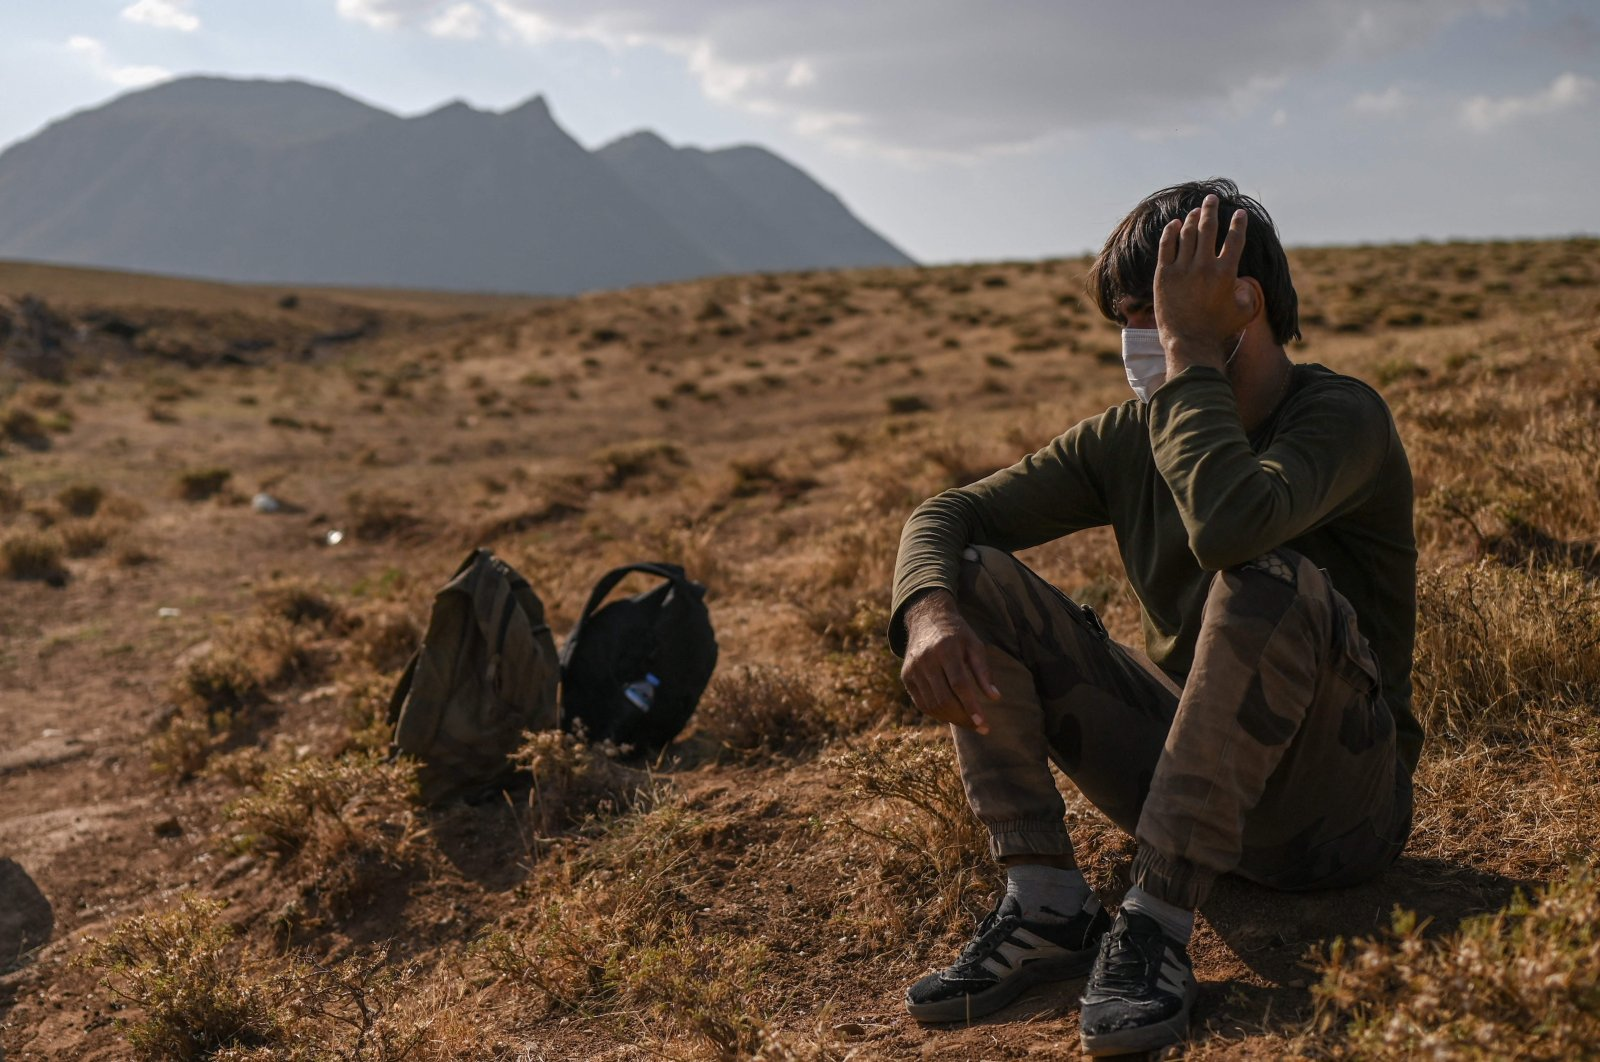 An Afghan migrant rests while waiting for transport by smugglers after crossing the Iran-Turkish border on August 15, 2021 in Tatvan, on the western shores of Lake Van, eastern Turkey. (AFP Photo)